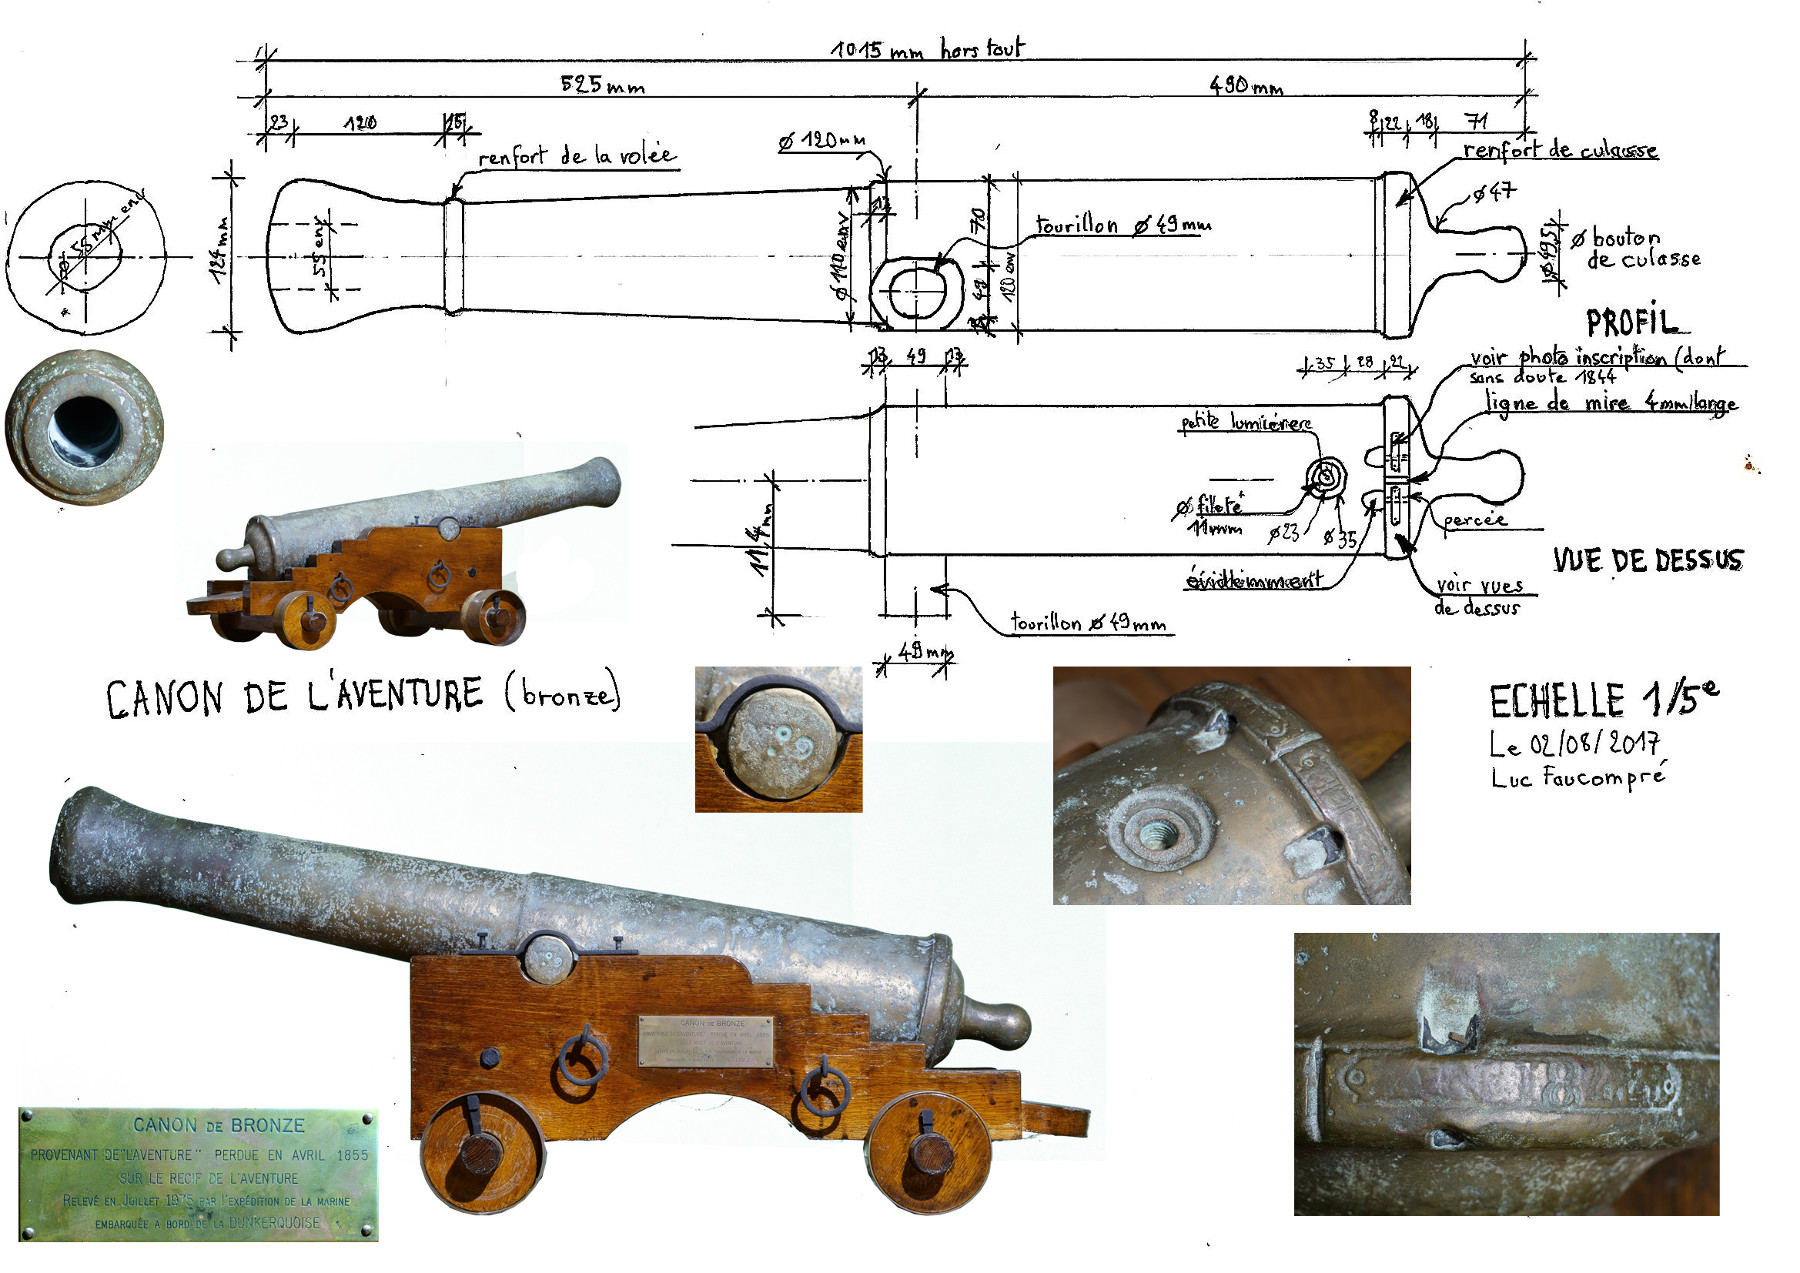 Drawing and dimensions of the canon taken by Luc Faucompré of Fortunes de Mer Calédoniennes